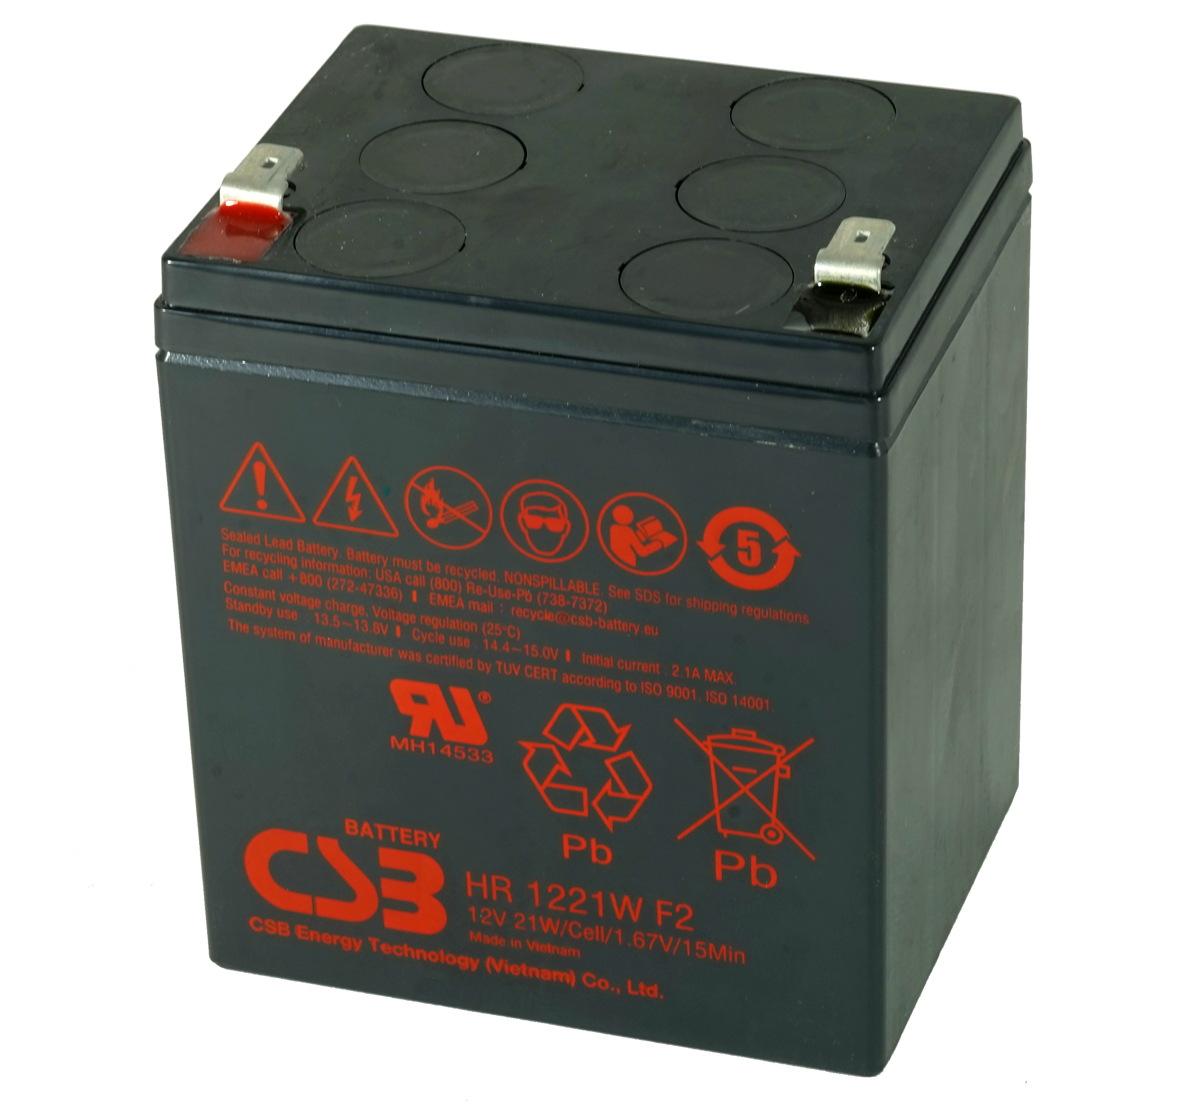 MDS30 UPS Battery Kit - Replaces APC RBC30